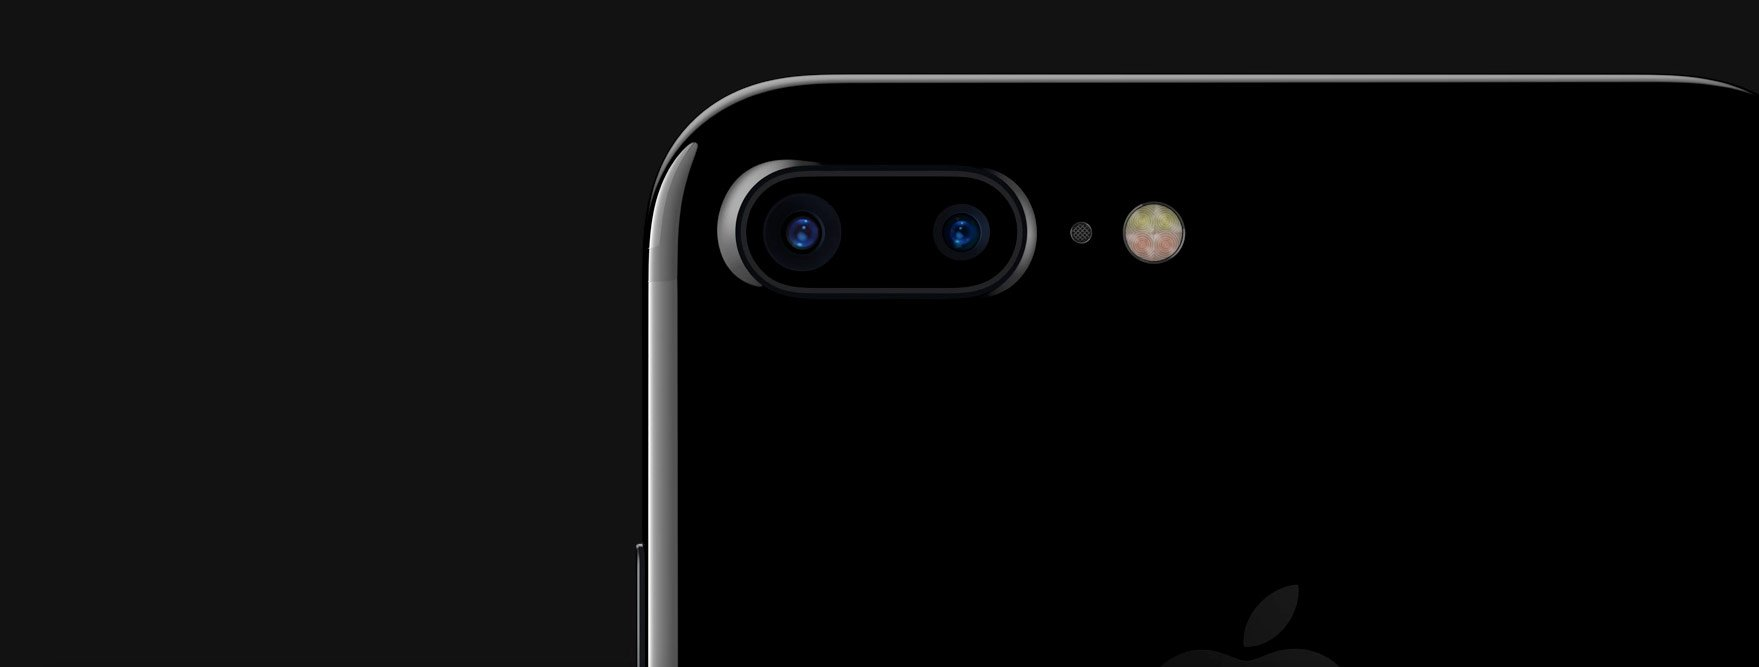 New HomePod Firmware Data Details an iPhone 'SmartCamera' Feature